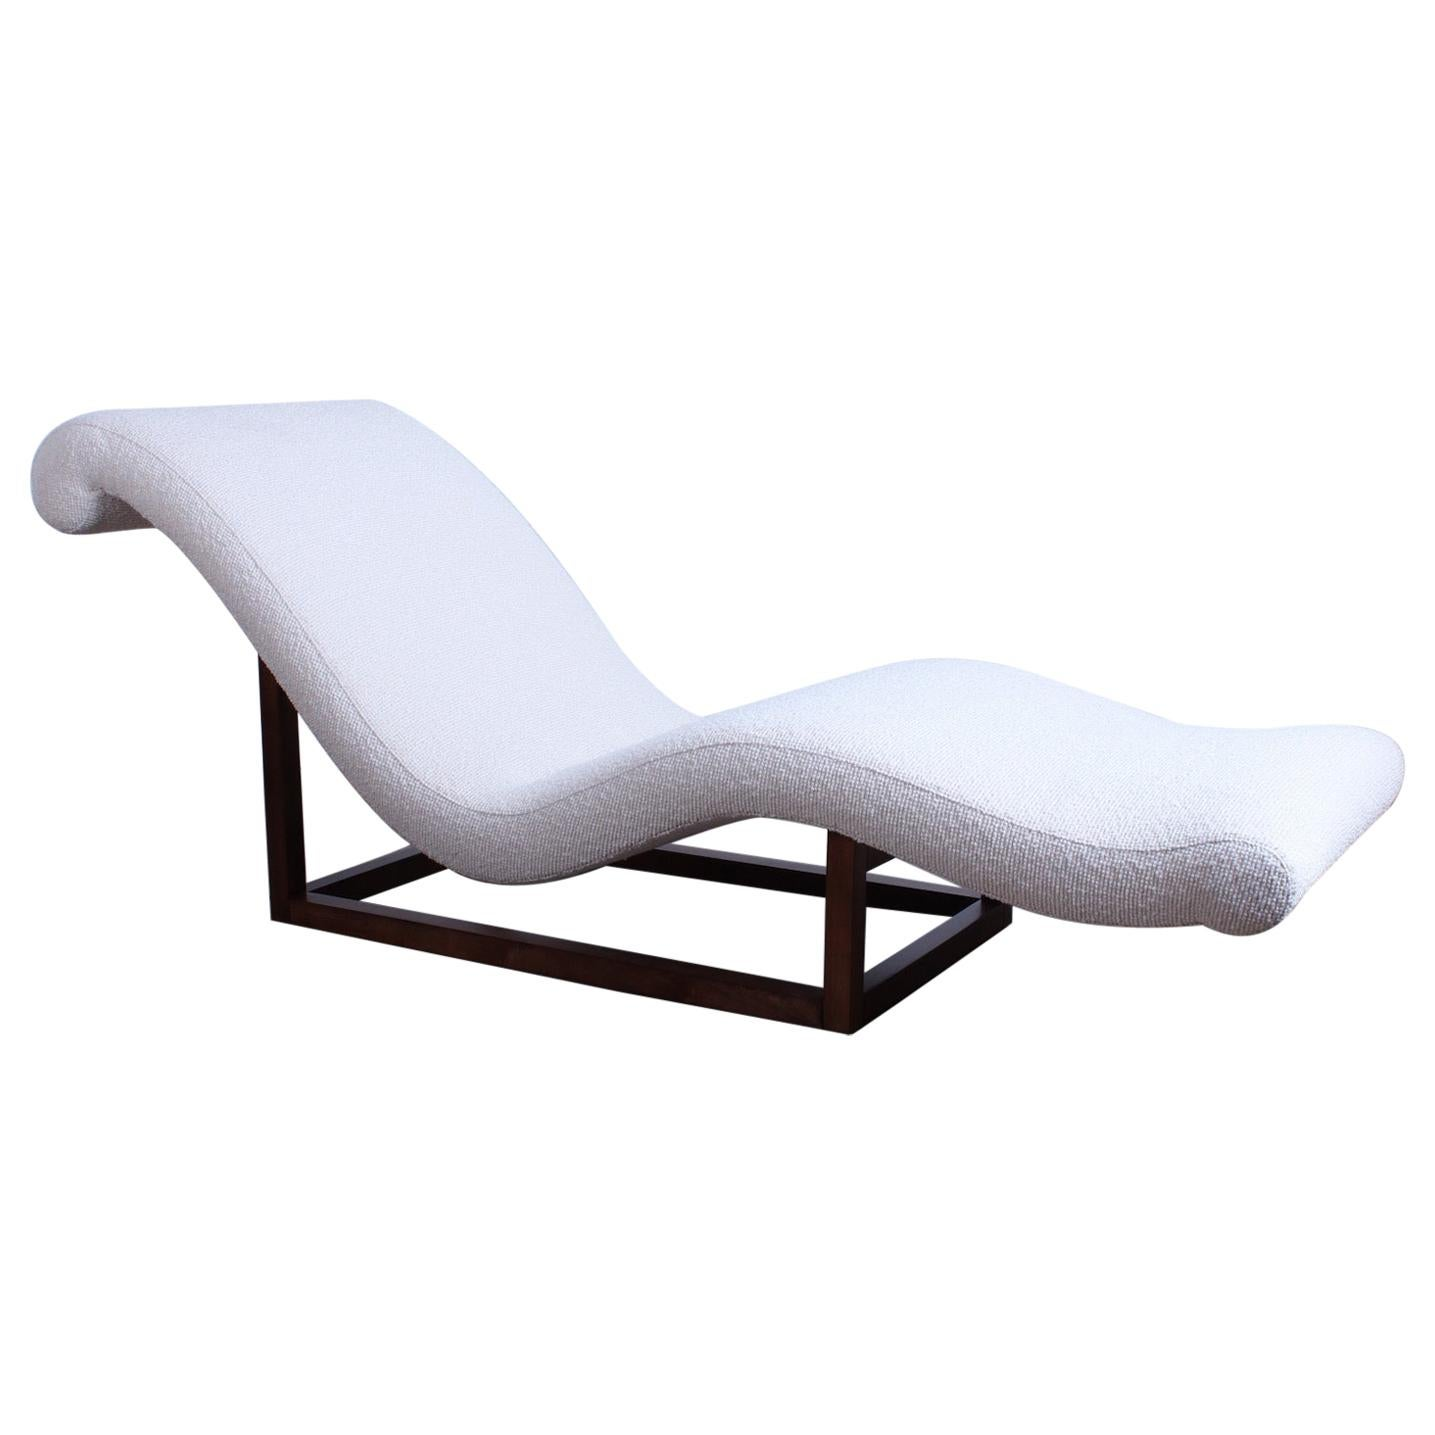 Milo Baughman Chrome And White Faux Fur Chaise Lounge 1970s At 1stdibs